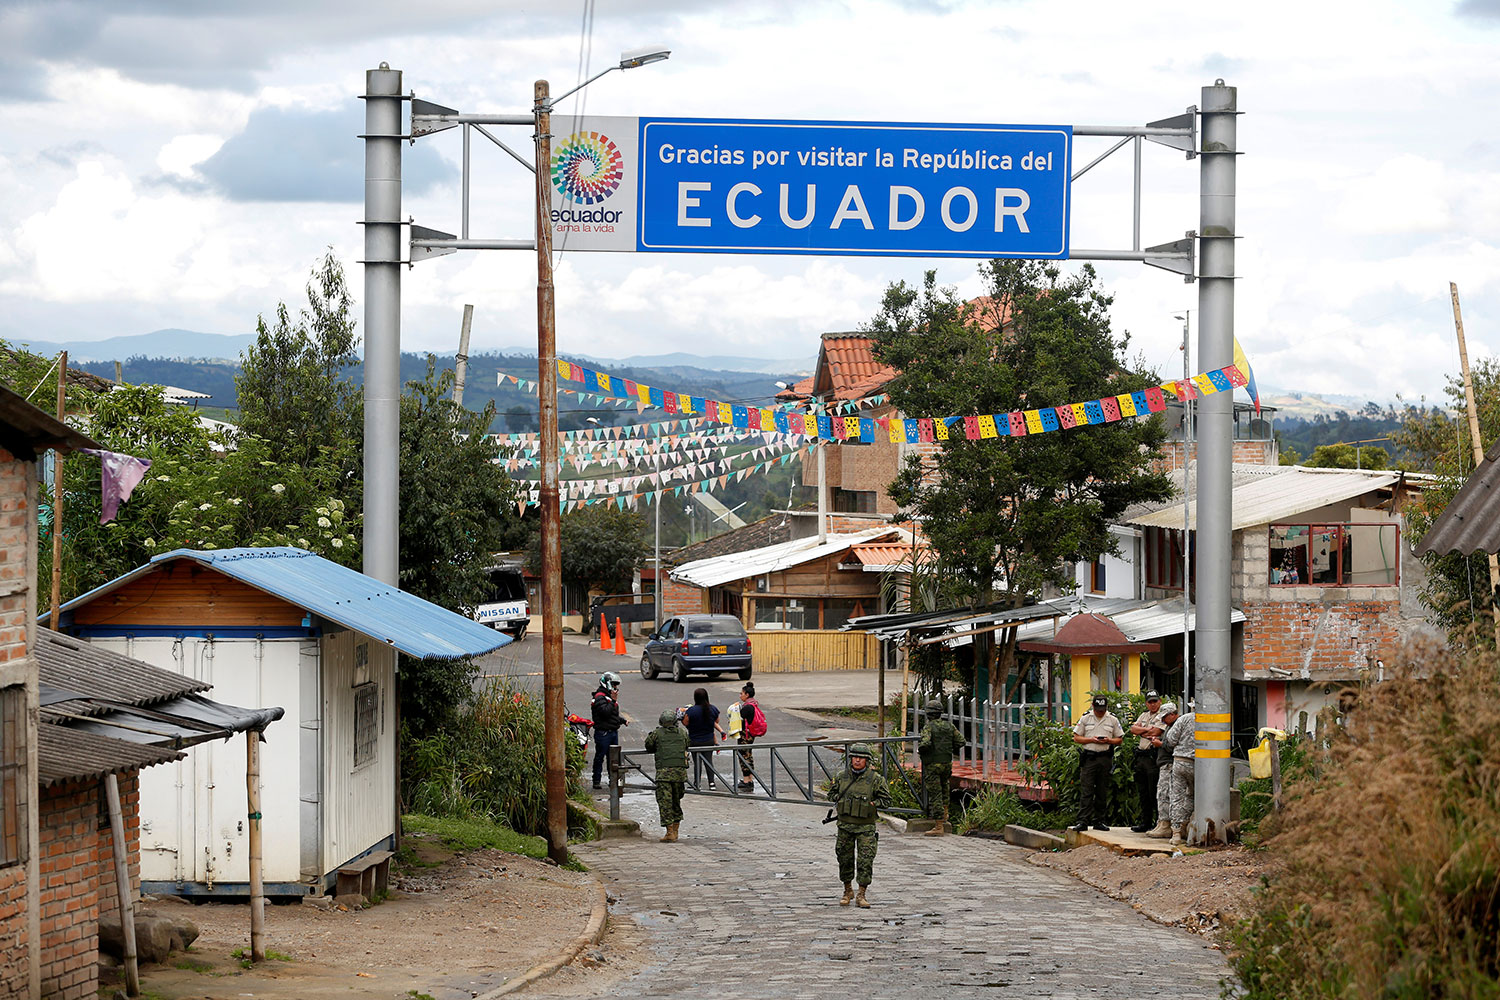 "Soldiers guard the Ecuadoran side of a border with Colombia in Tufino, Ecuador on March 15, 2020, after country leaders announced the closure of its borders to all foreign travelers due to COVID-19. The photo shows a simple border crossing through a small town with a big sign reading ""Ecuador"" above the street. The crossing is closed with metal barricades, and a soldier stands out front. REUTERS/Daniel Tapia"